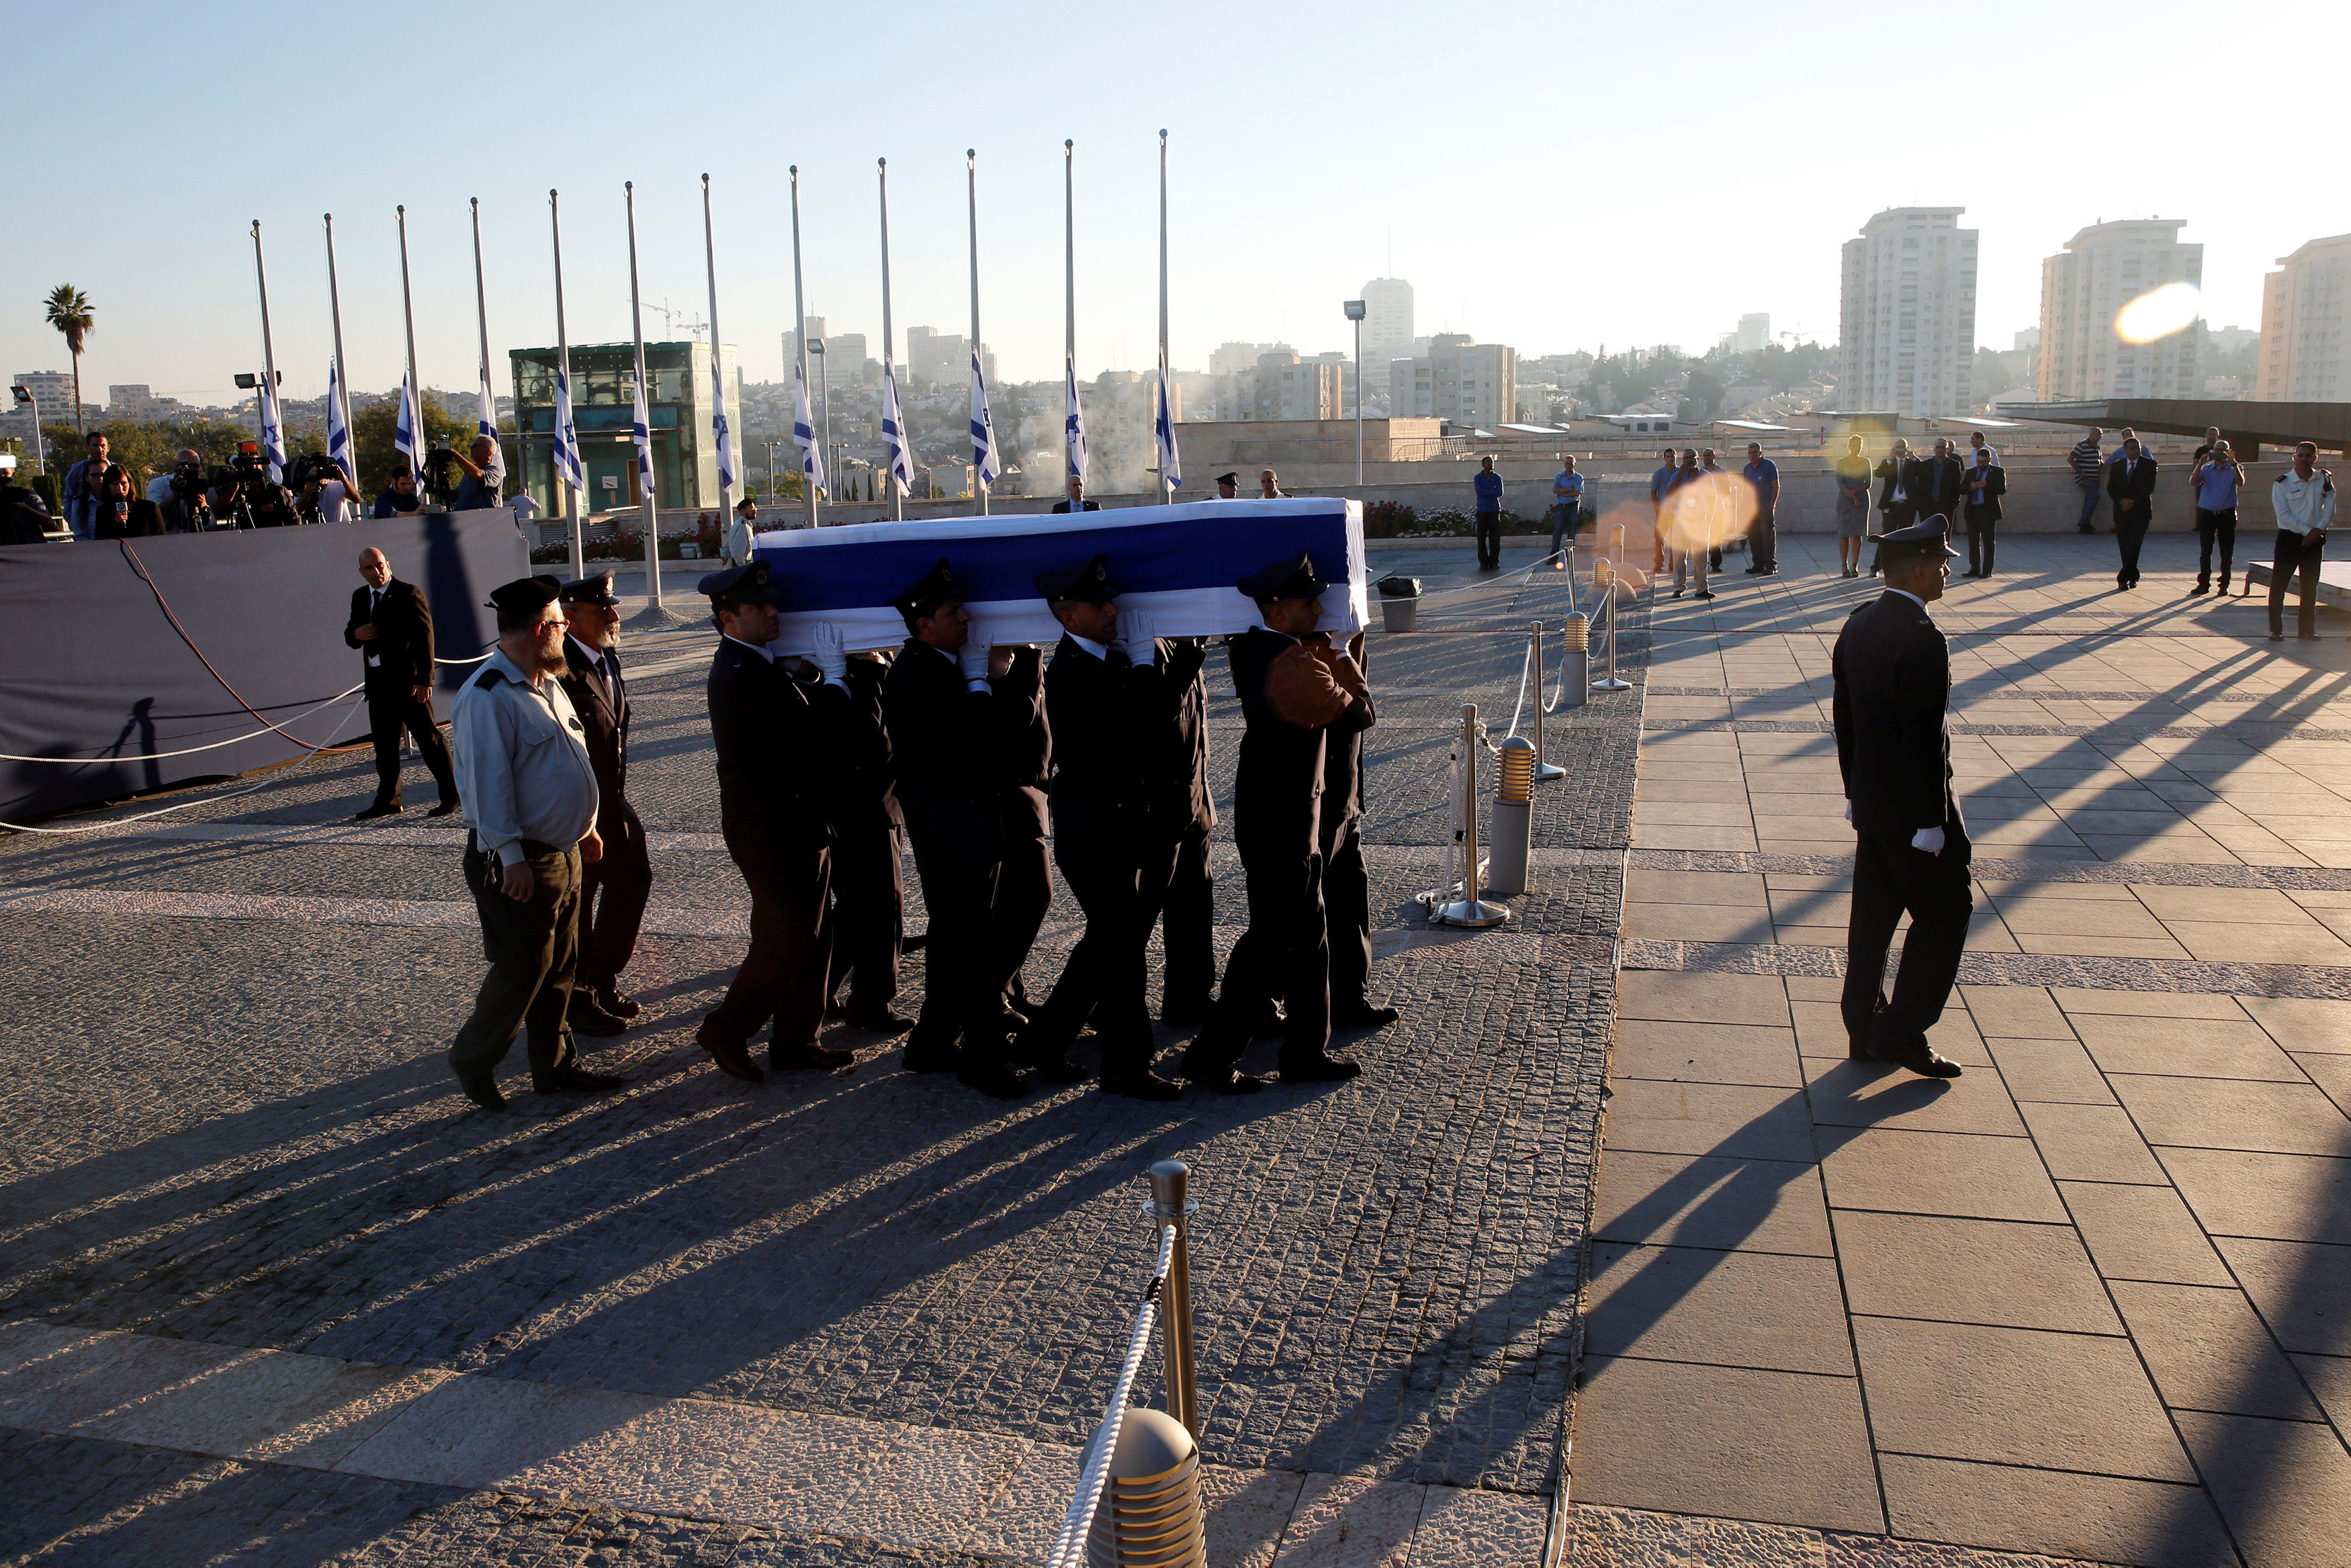 The flag-draped coffin of former Israeli President Shimon Peres is carried by members of a Knesset guard upon its arrival at the Knesset Plaza, is Jerusalem